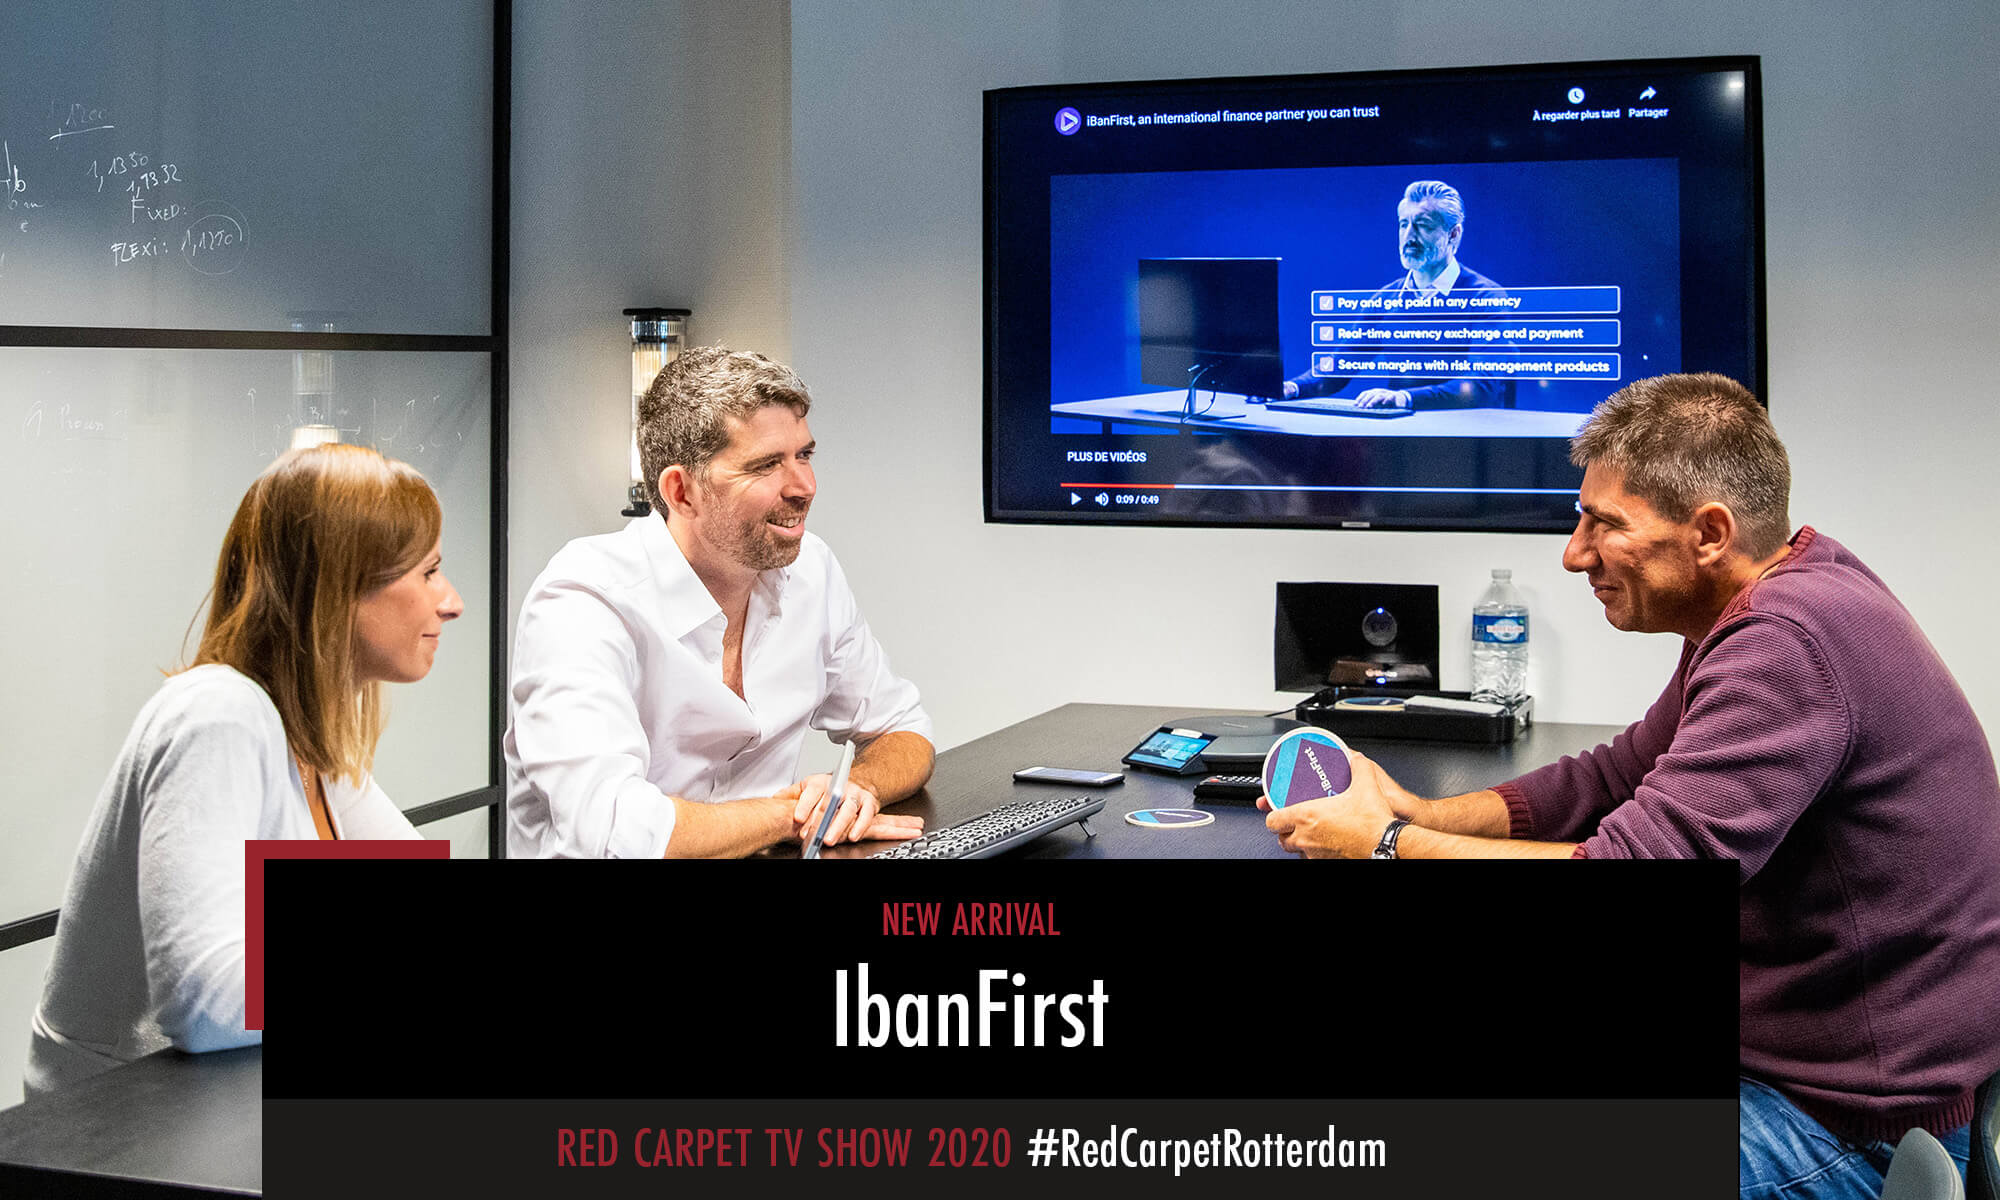 IbanFirst is one of the new arrivals participating in the Red Carpet TV Show 2020